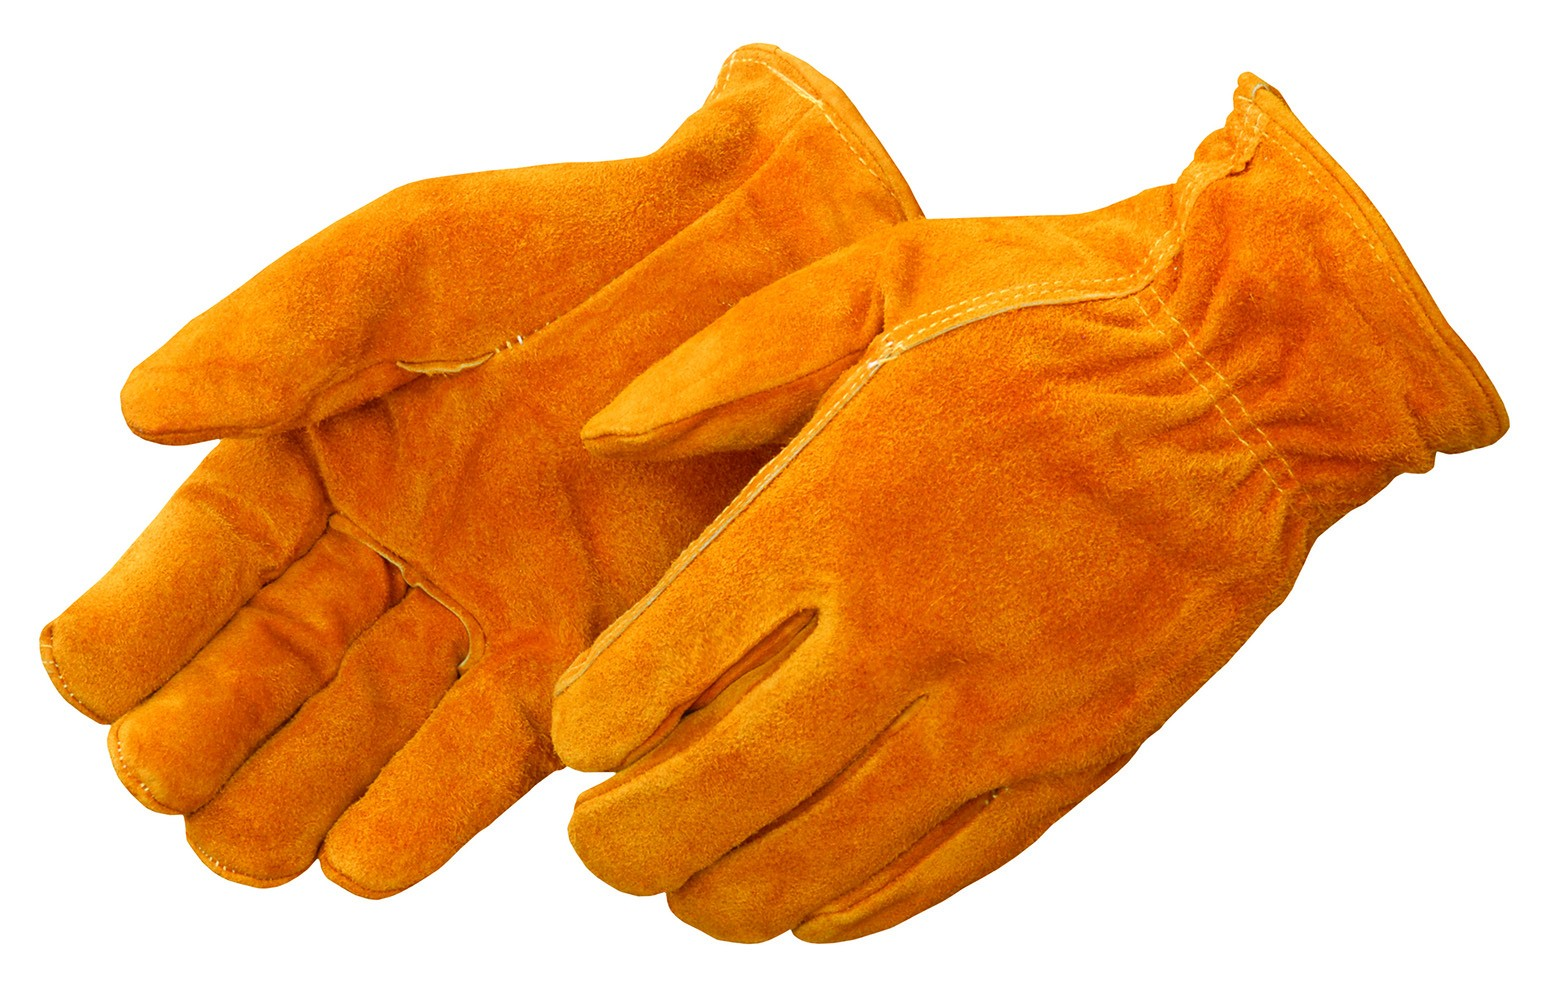 3pk wolverine leather work gloves extra large -  Wolverine Lined Premium Grain Leather Gloves Gloves